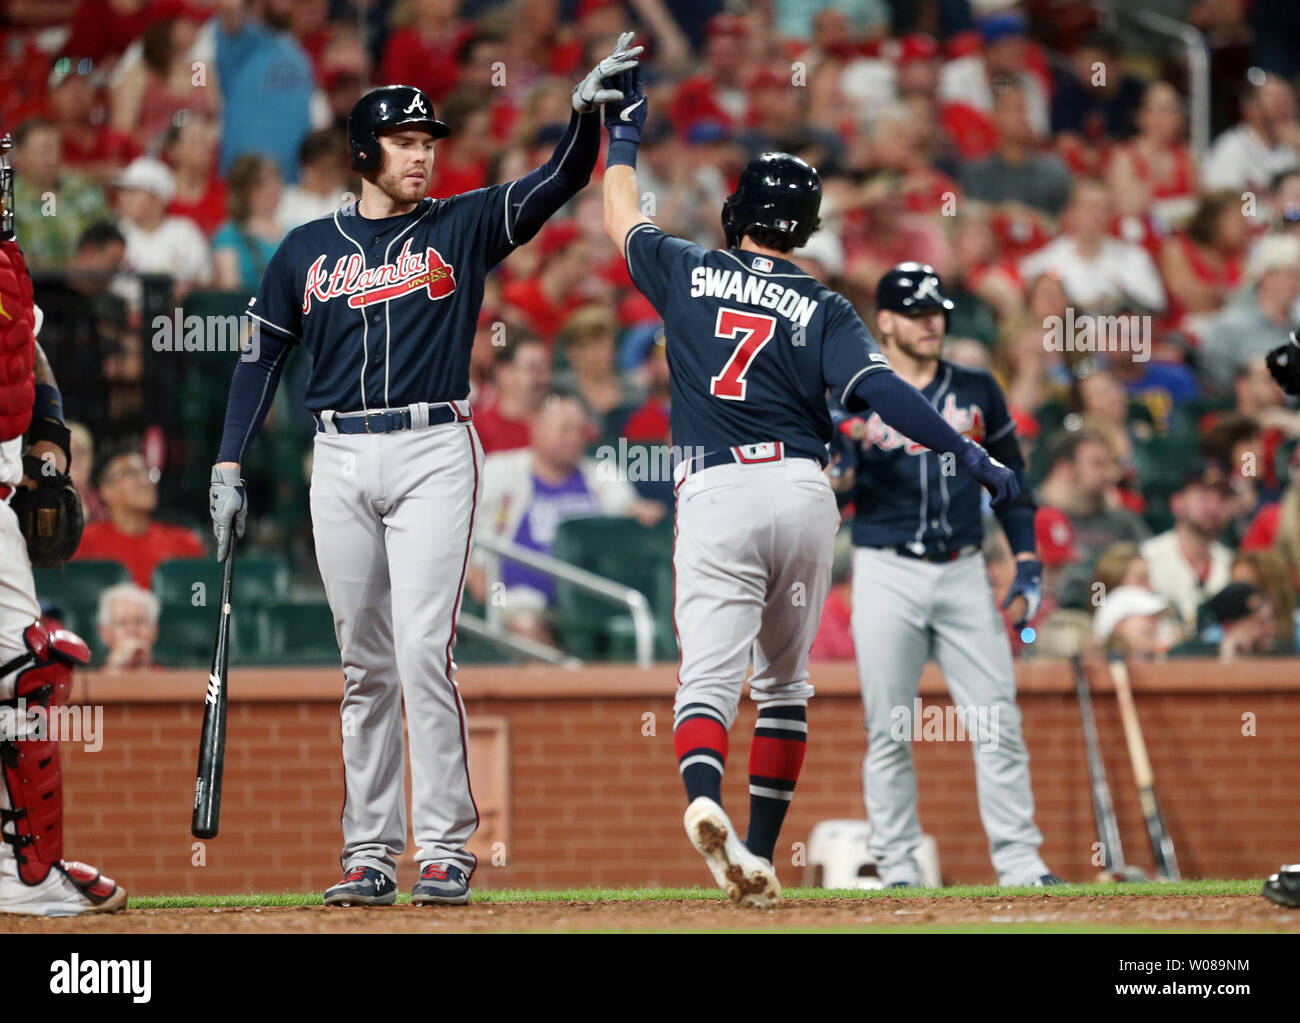 Atlanta Braves Dansby Swanson slaps hands with teammate Freddie Freeman after hitting a two run home run against the St. Louis Cardinals in the eighth inning at Busch Stadium in St. Louis on May 24, 2019. Photo by Bill Greenblatt/UPI Stock Photo